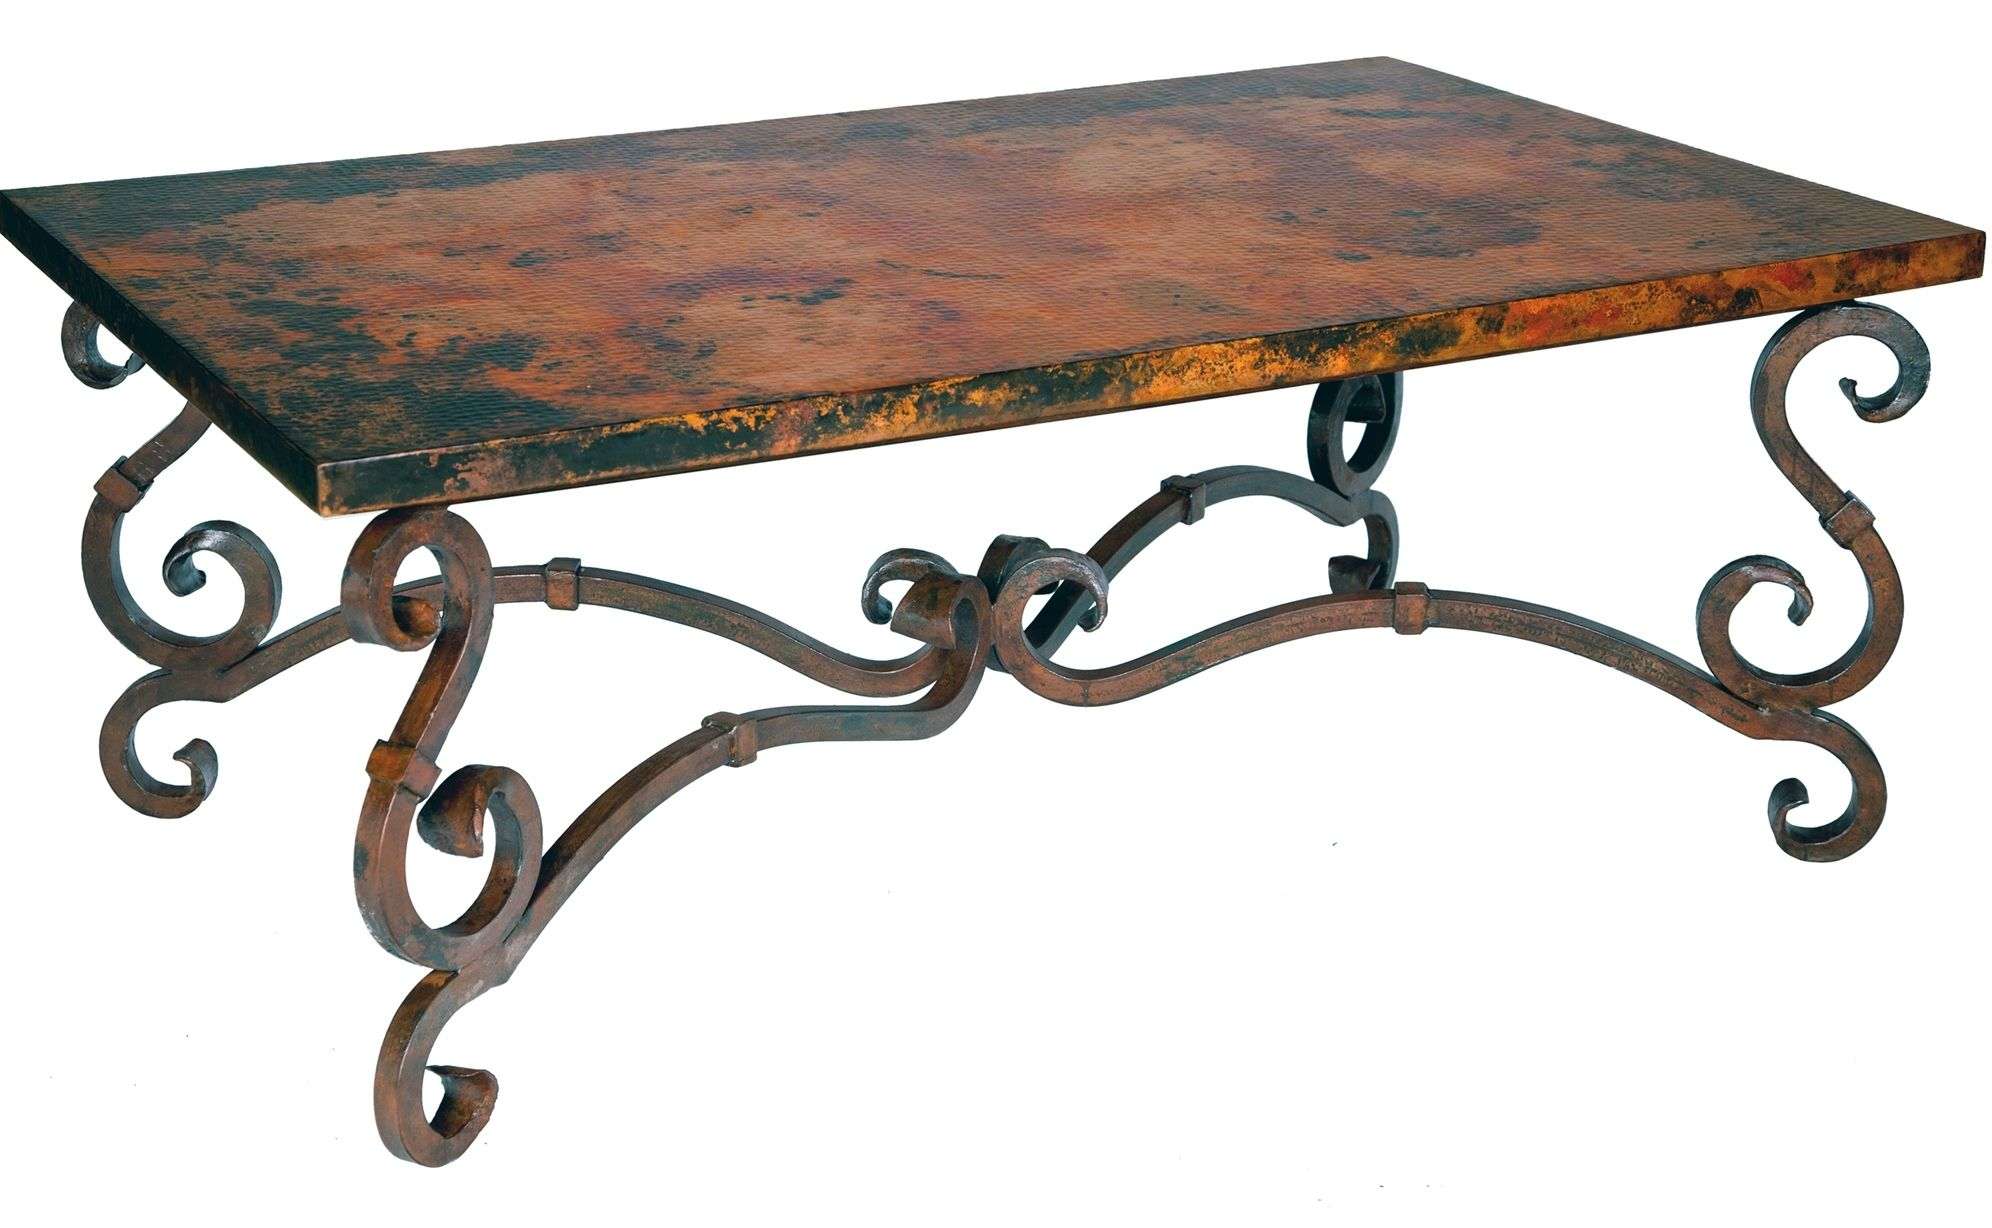 Stunning Copper Wrought Iron Furniture By Prima Wrought Iron